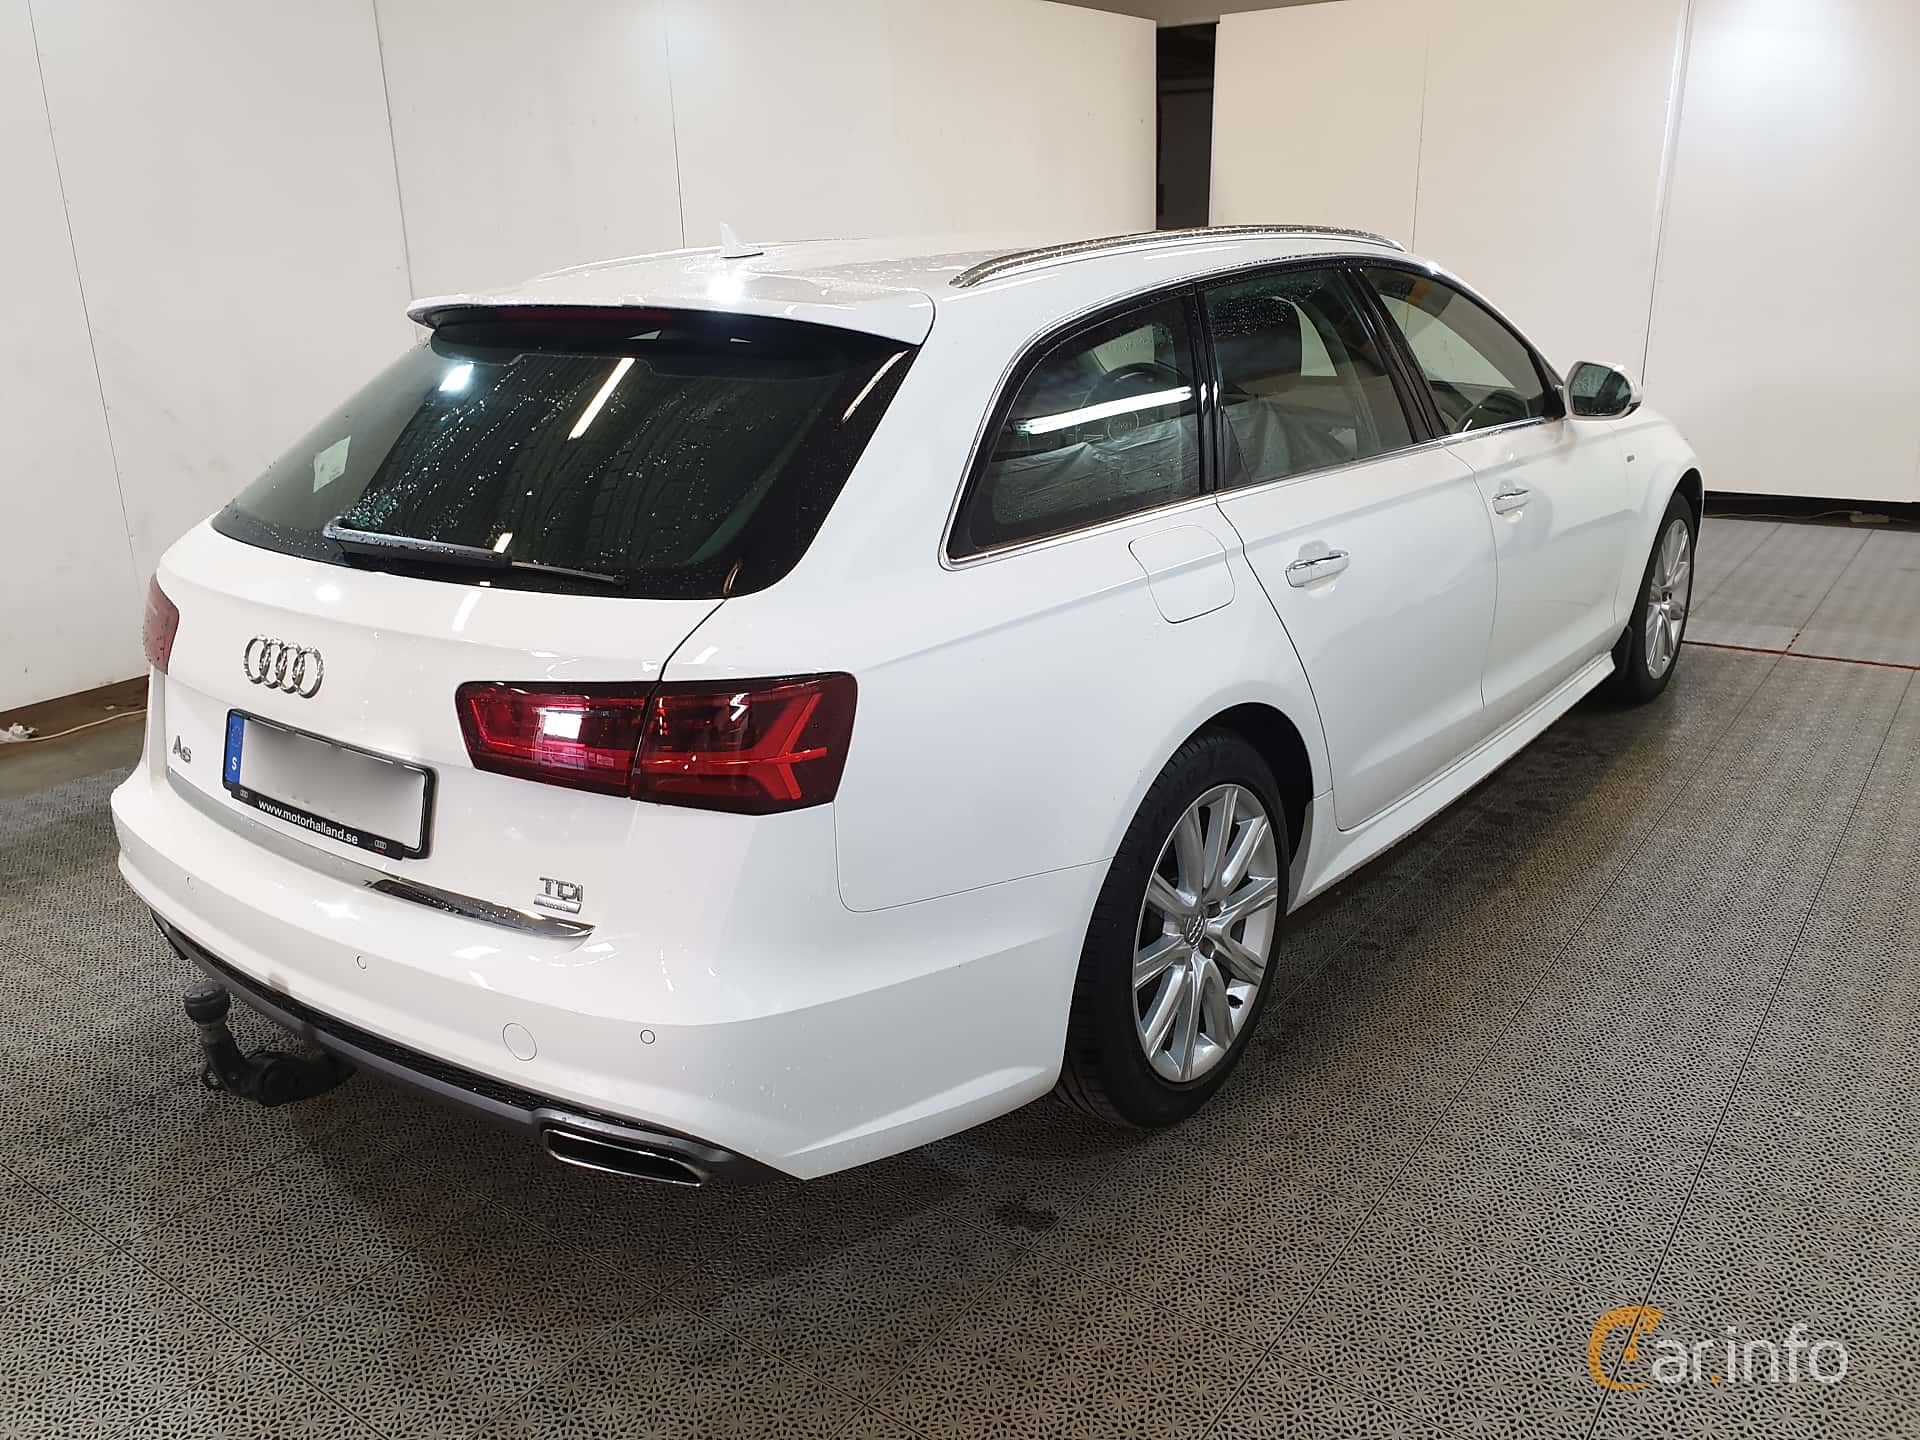 Audi A6 Avant 2.0 TDI ultra Manual, 190hp, 2017